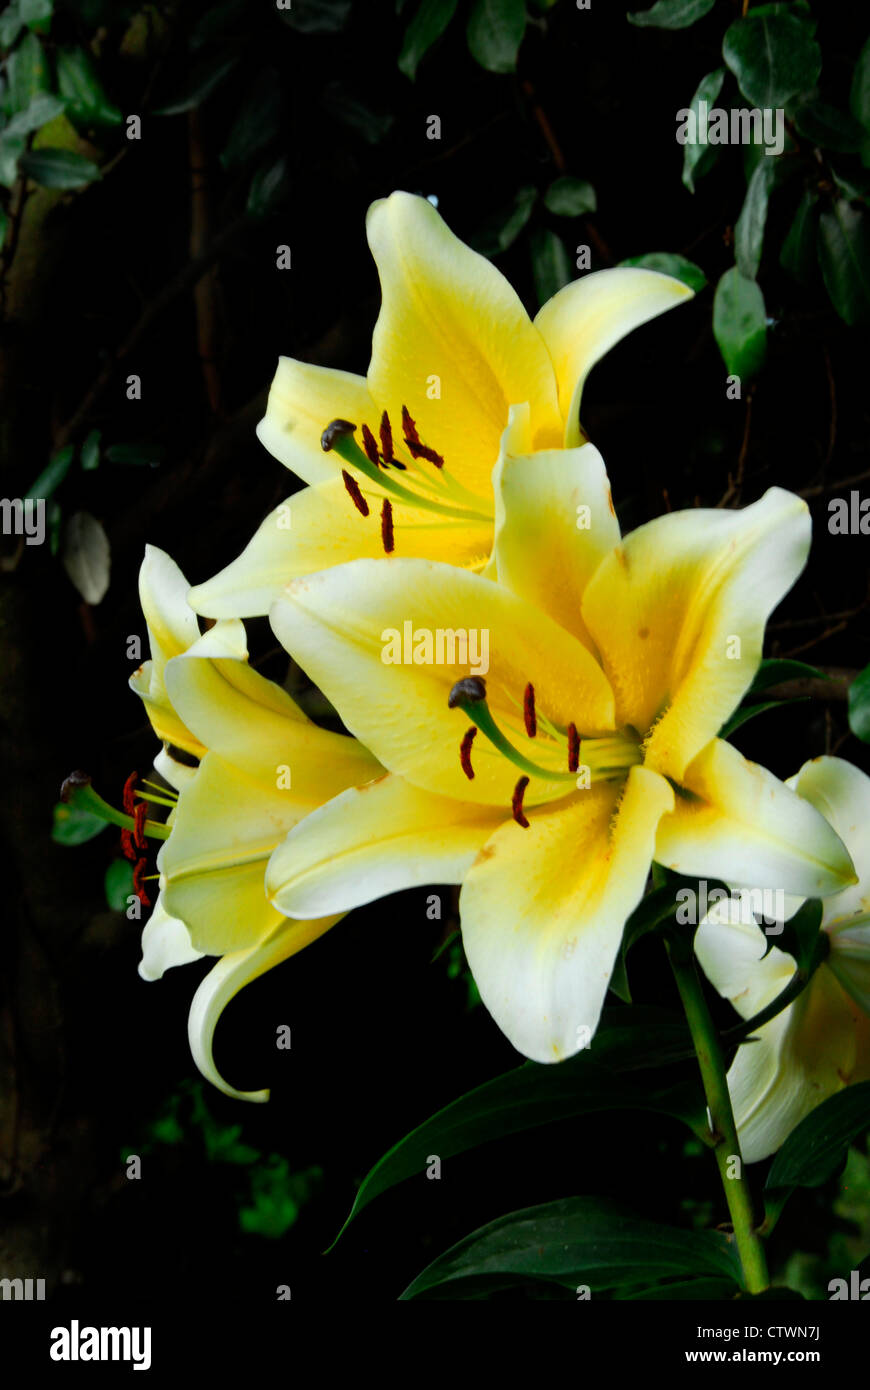 Flowers of an oriental tree lily,'yellow rocket'. Stock Photo